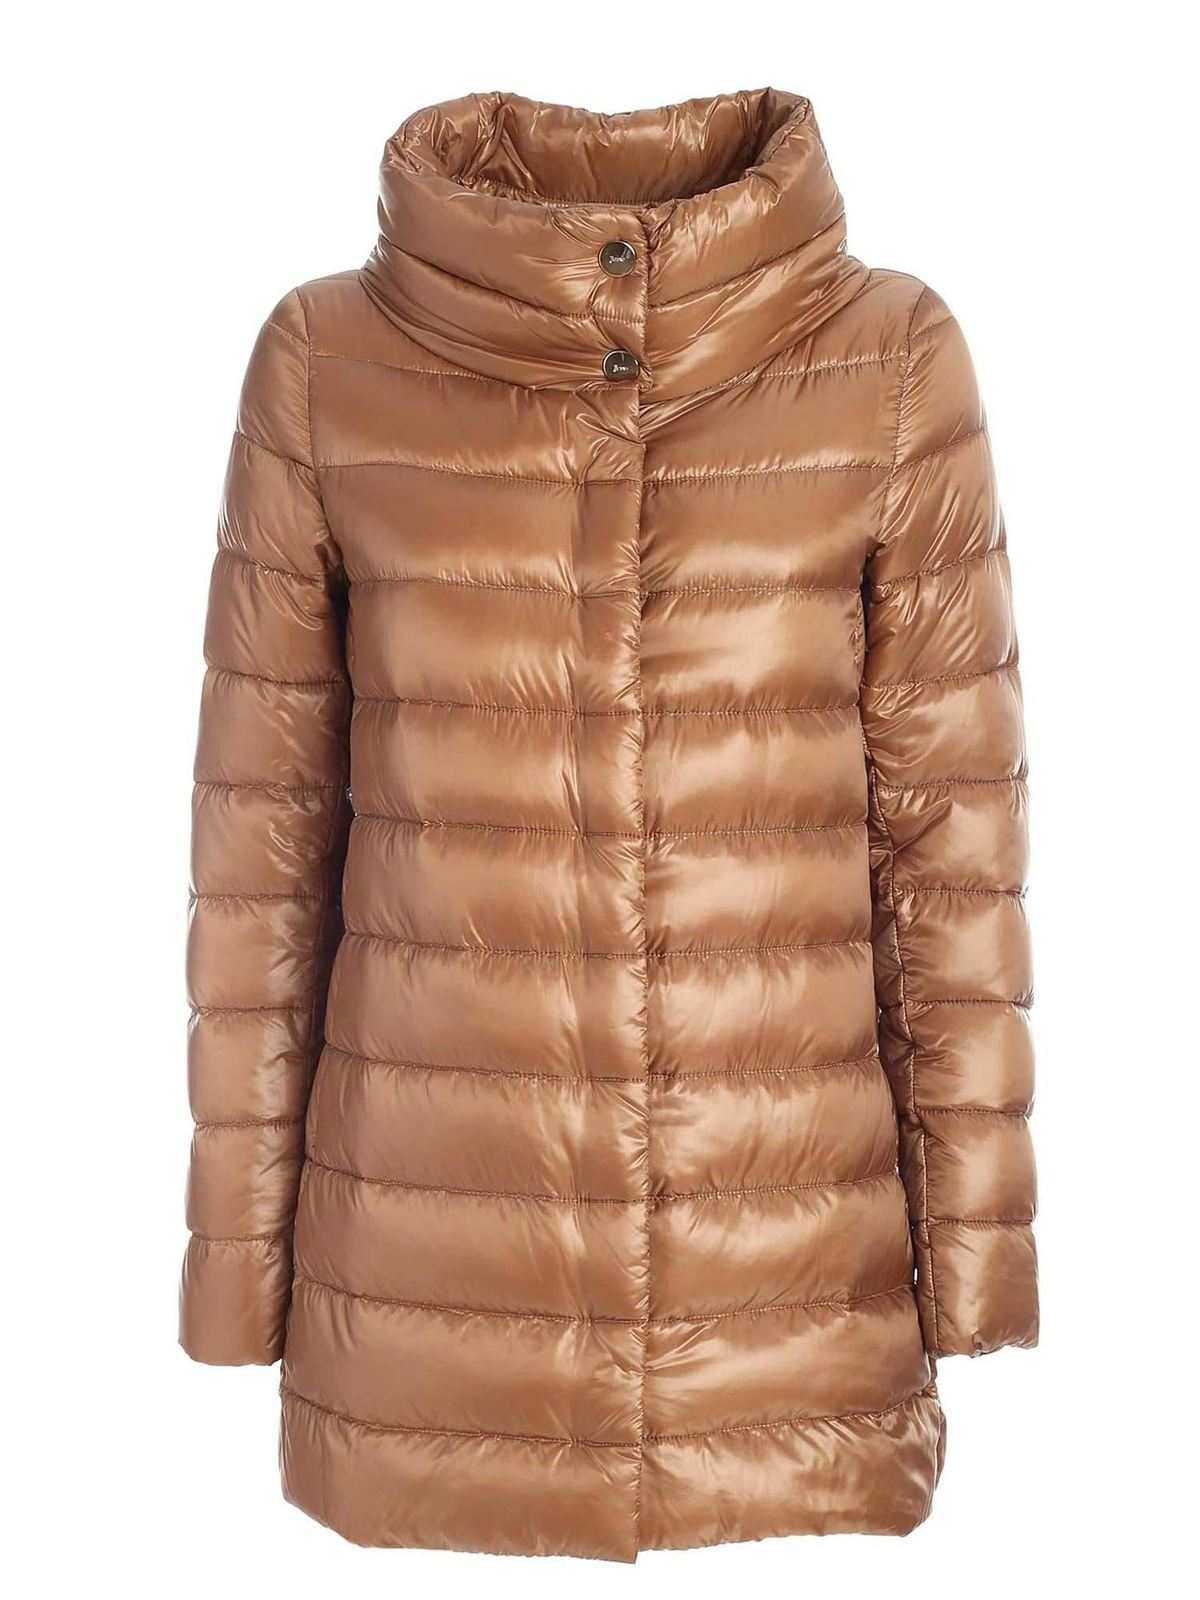 Herno ICONICO COLLECTION LONG DOWN JACKET IN BEIGE